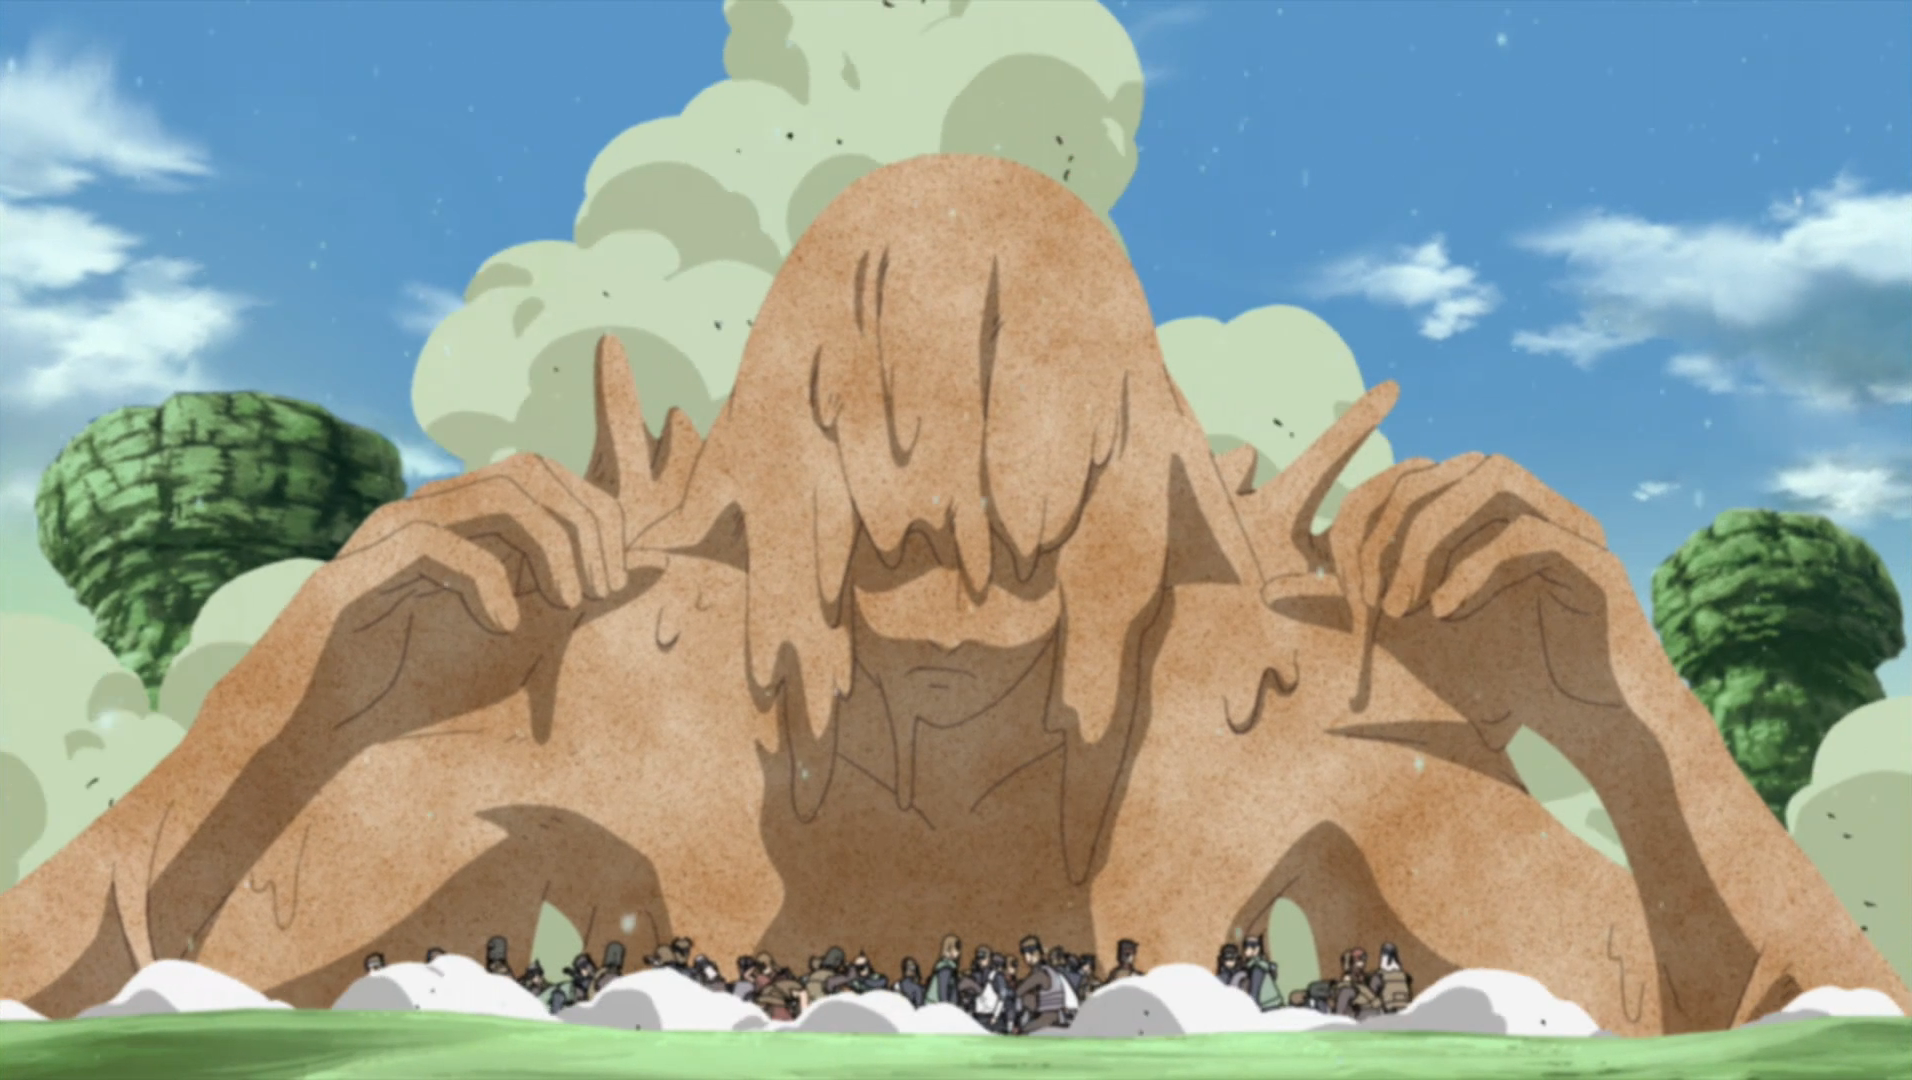 http://images3.wikia.nocookie.net/__cb20130228123258/naruto/images/6/61/Gaara%27s_improved_shield.png